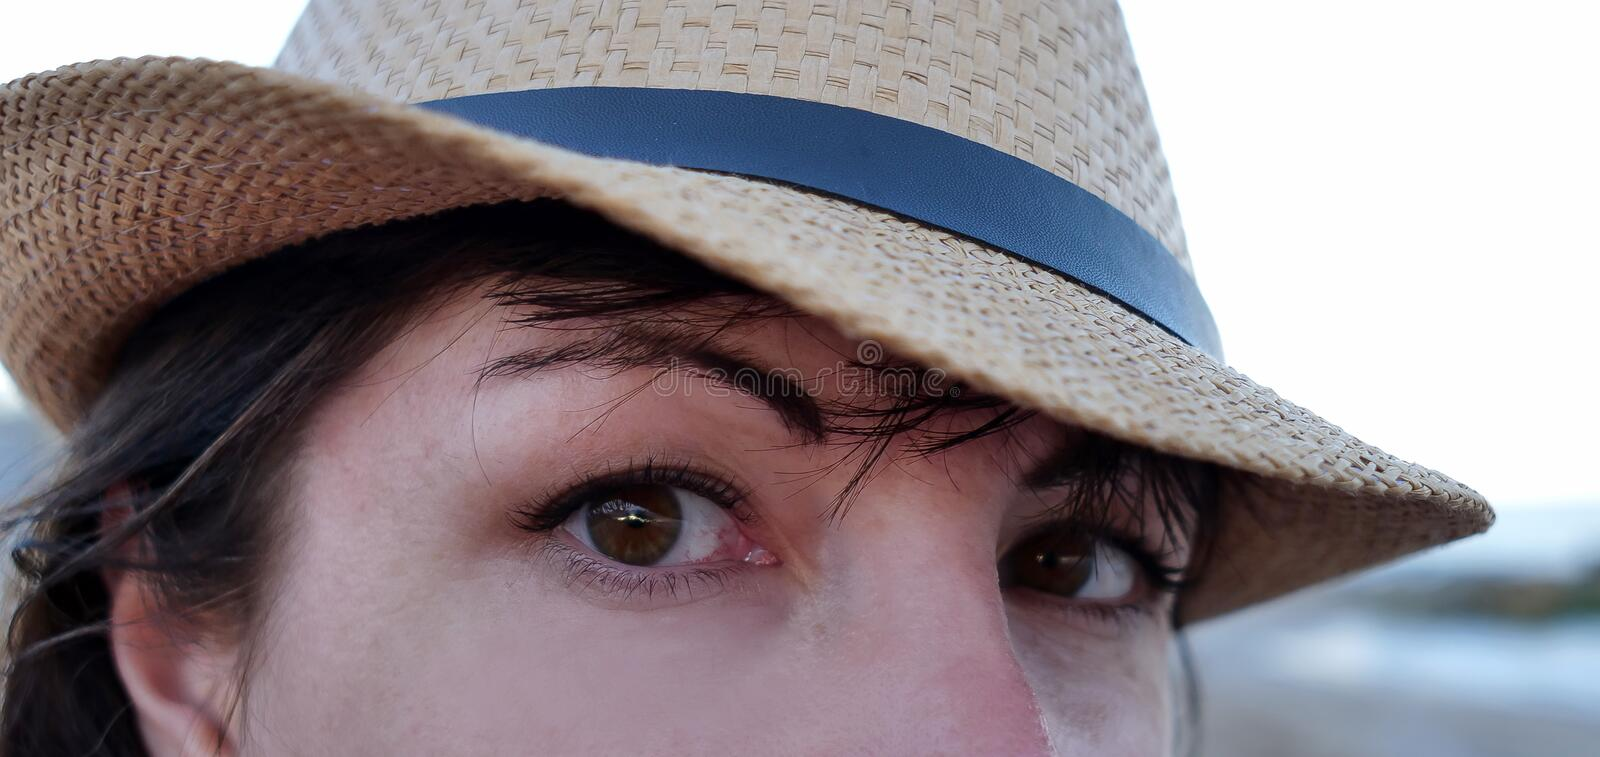 Portrait of a brown-eyed brunette in a hat looking straight into the camera with wide eyes, close-up stock photo